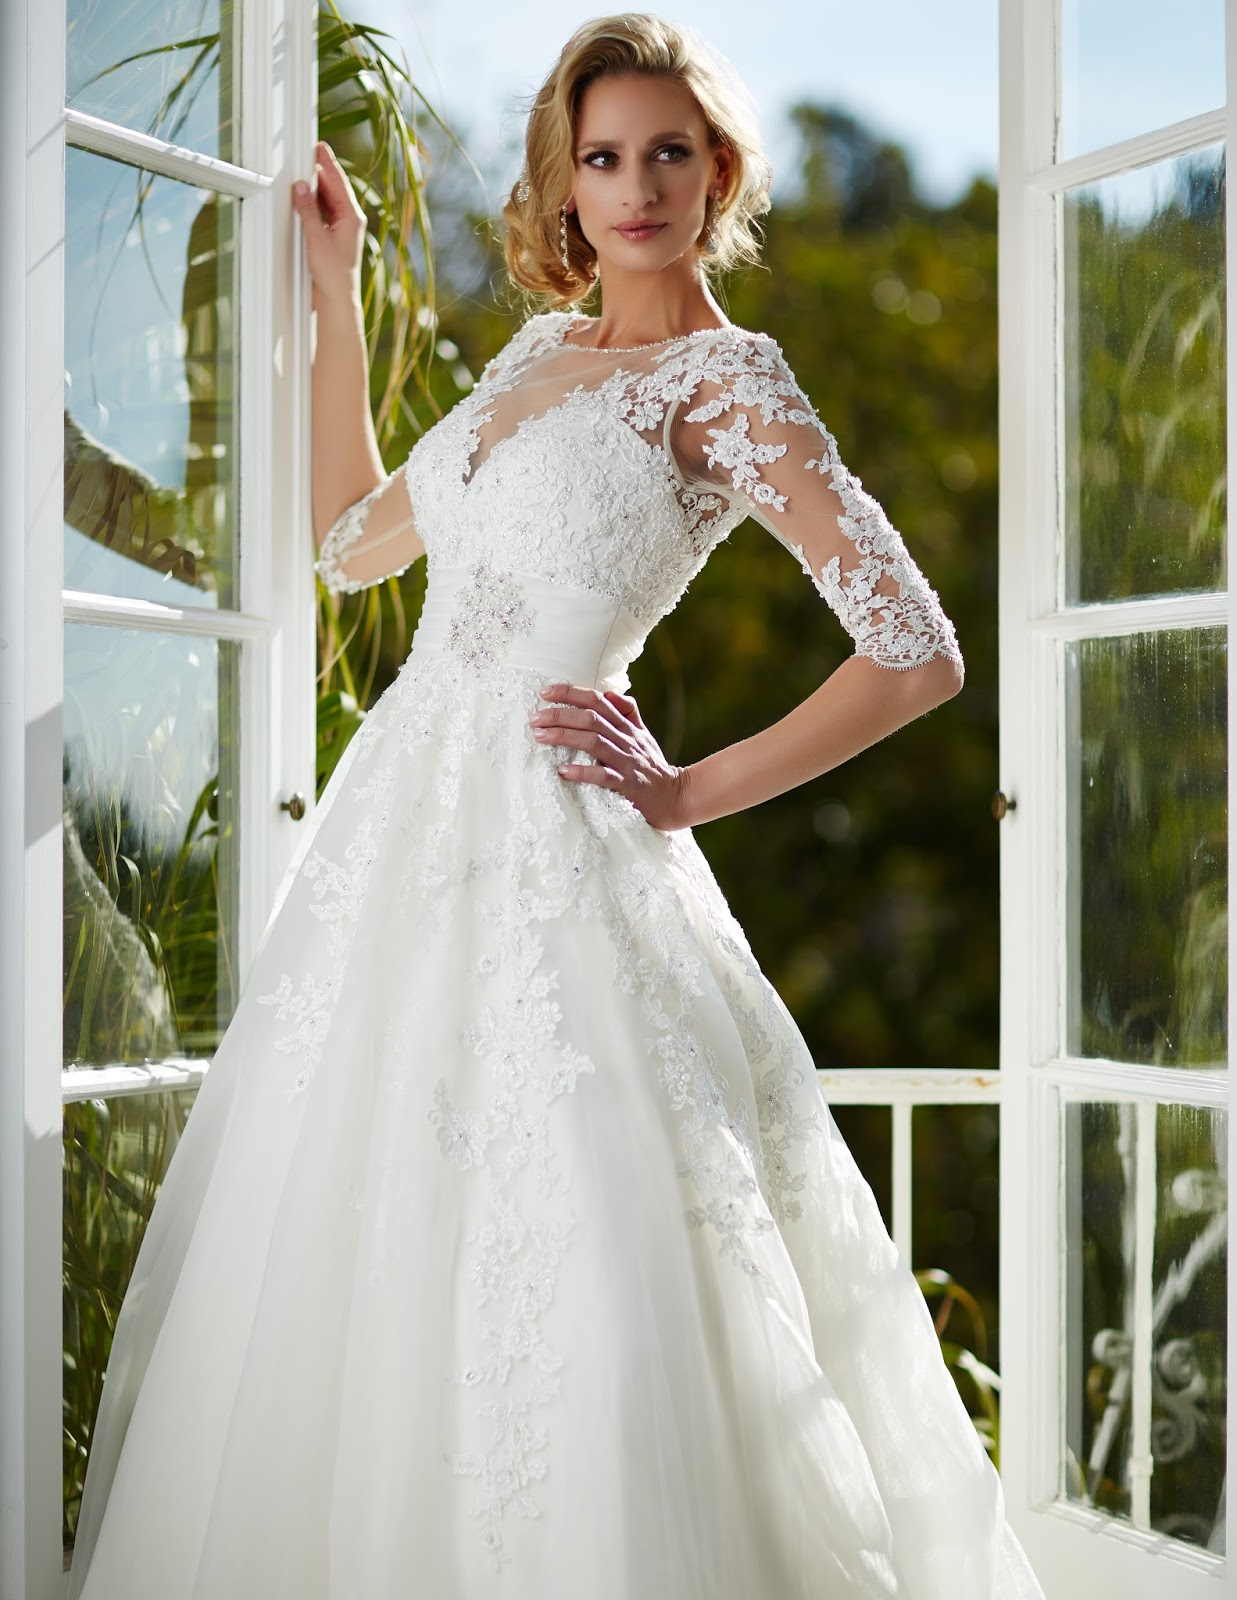 Wedding Dresses For Mature Brides - Mother Distracted